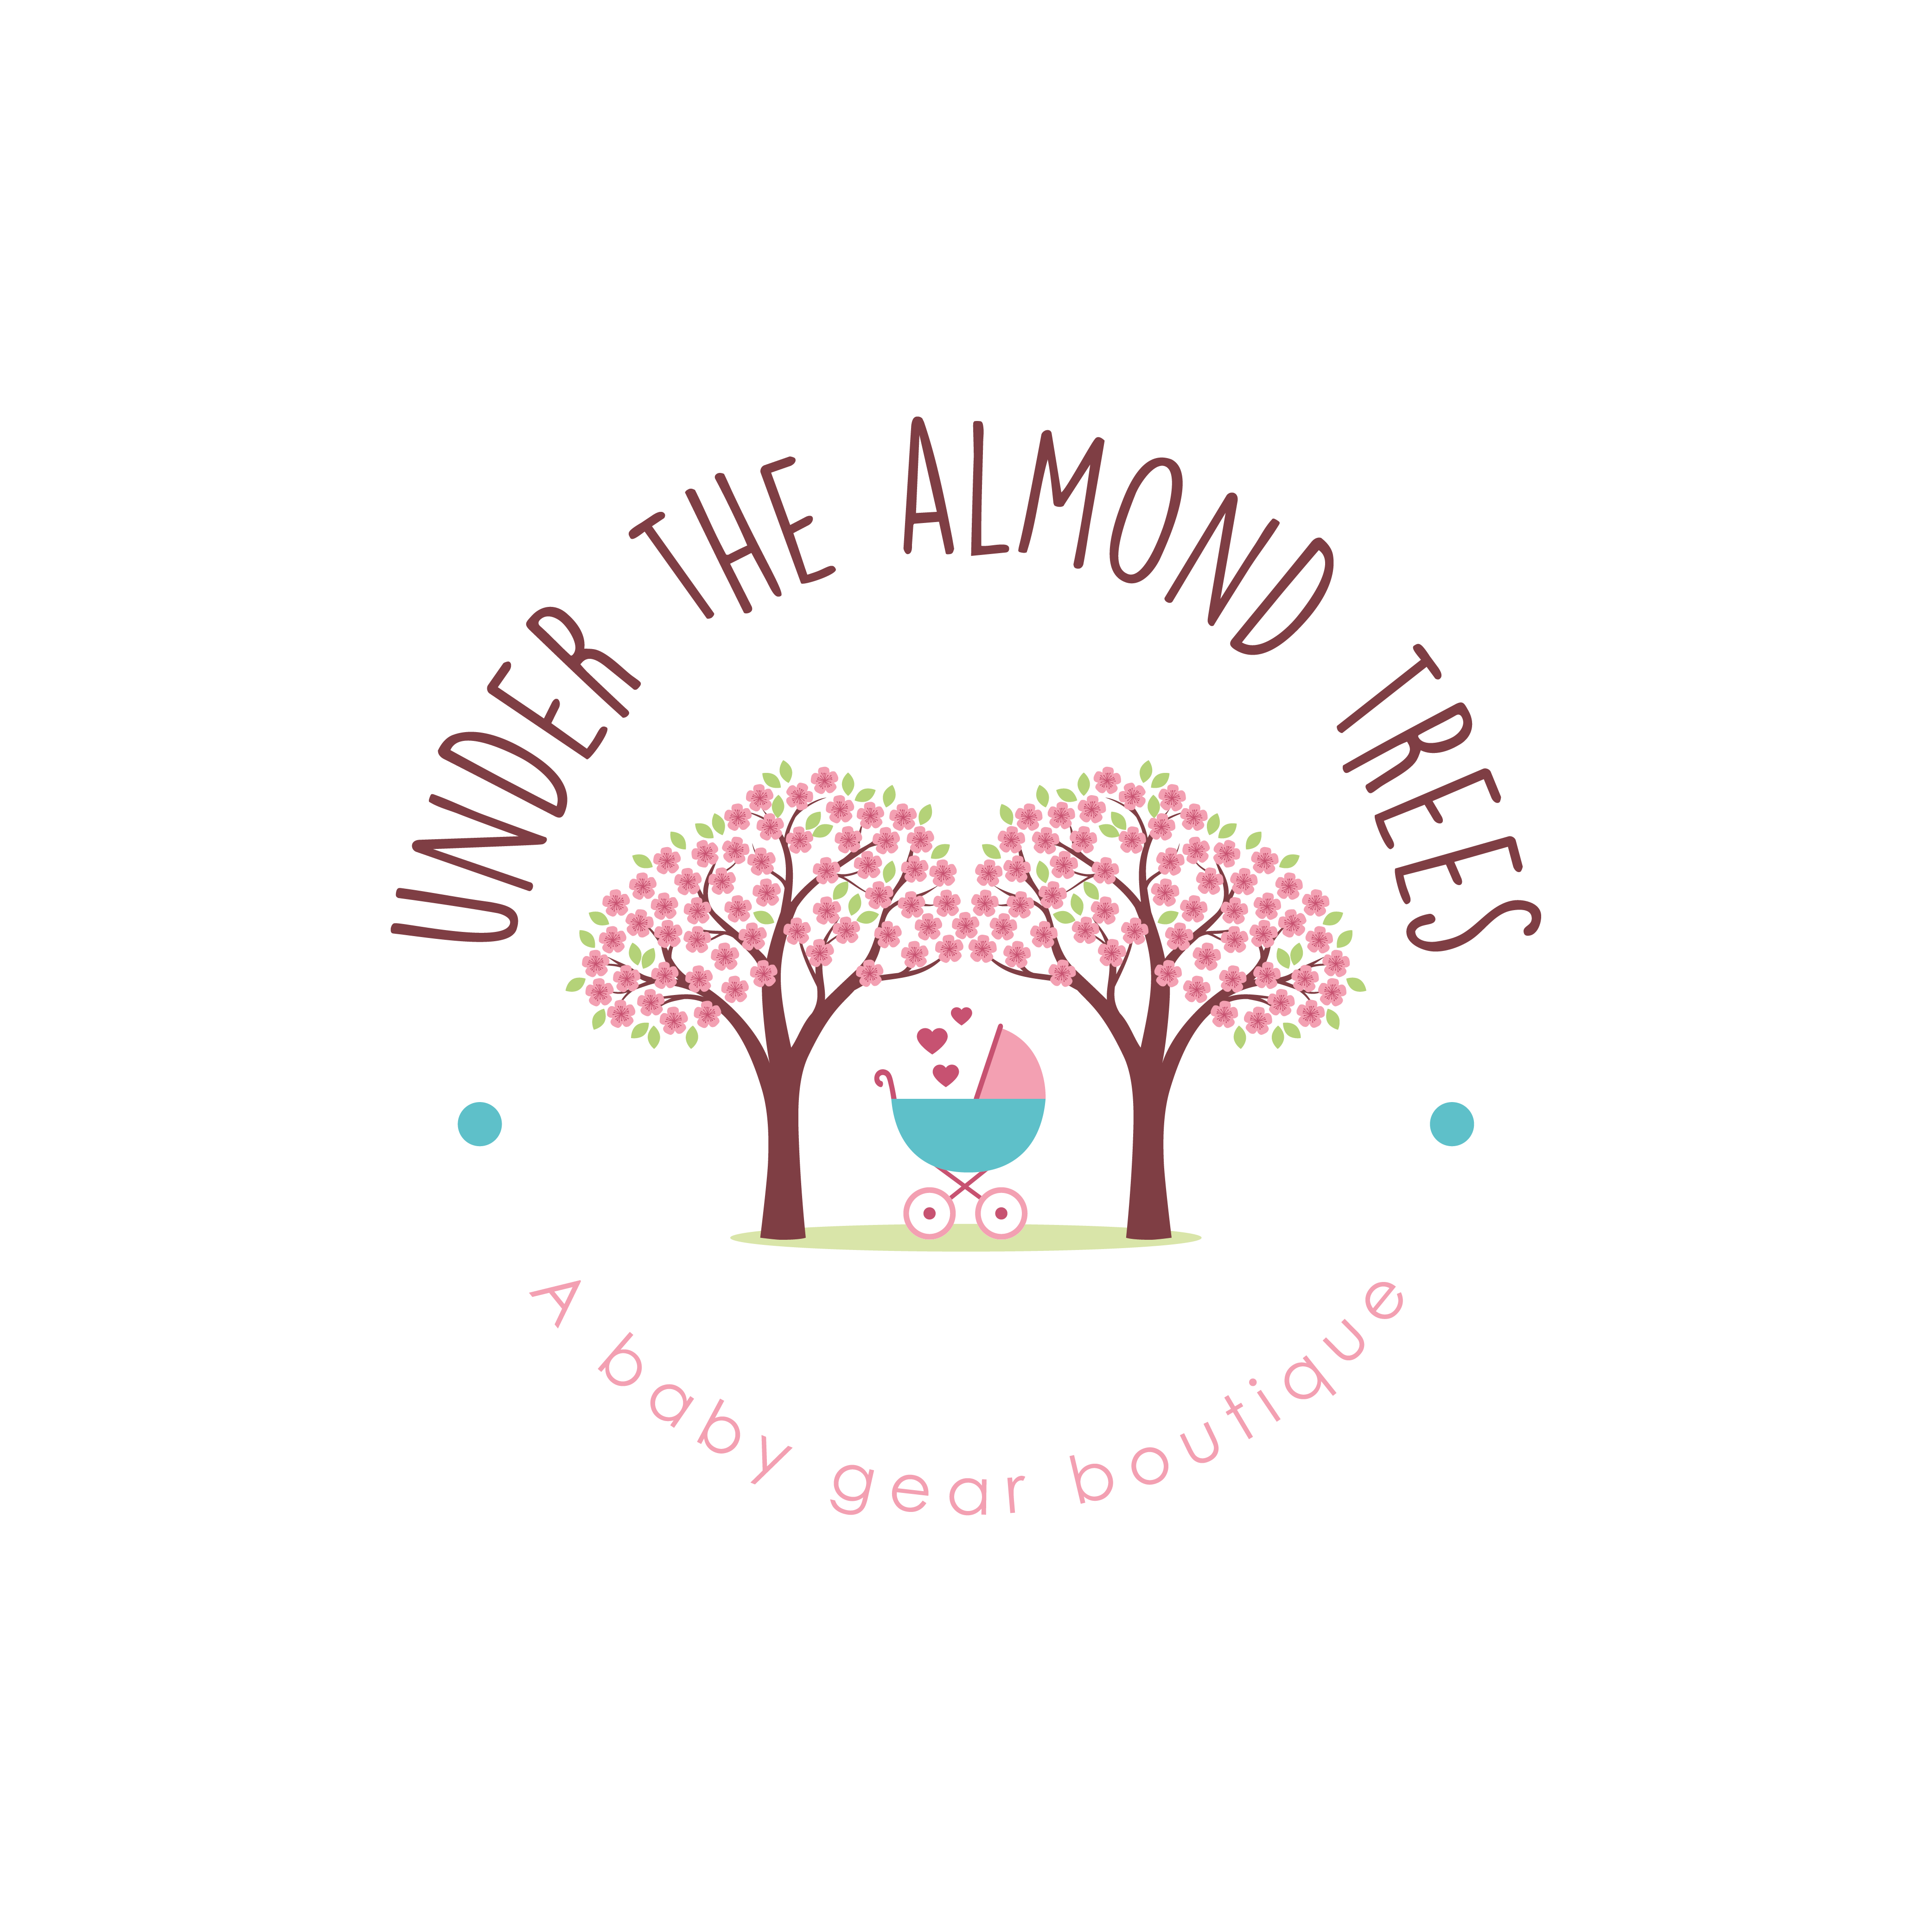 Design a captivating logo for baby gear store Under the Almond Trees!